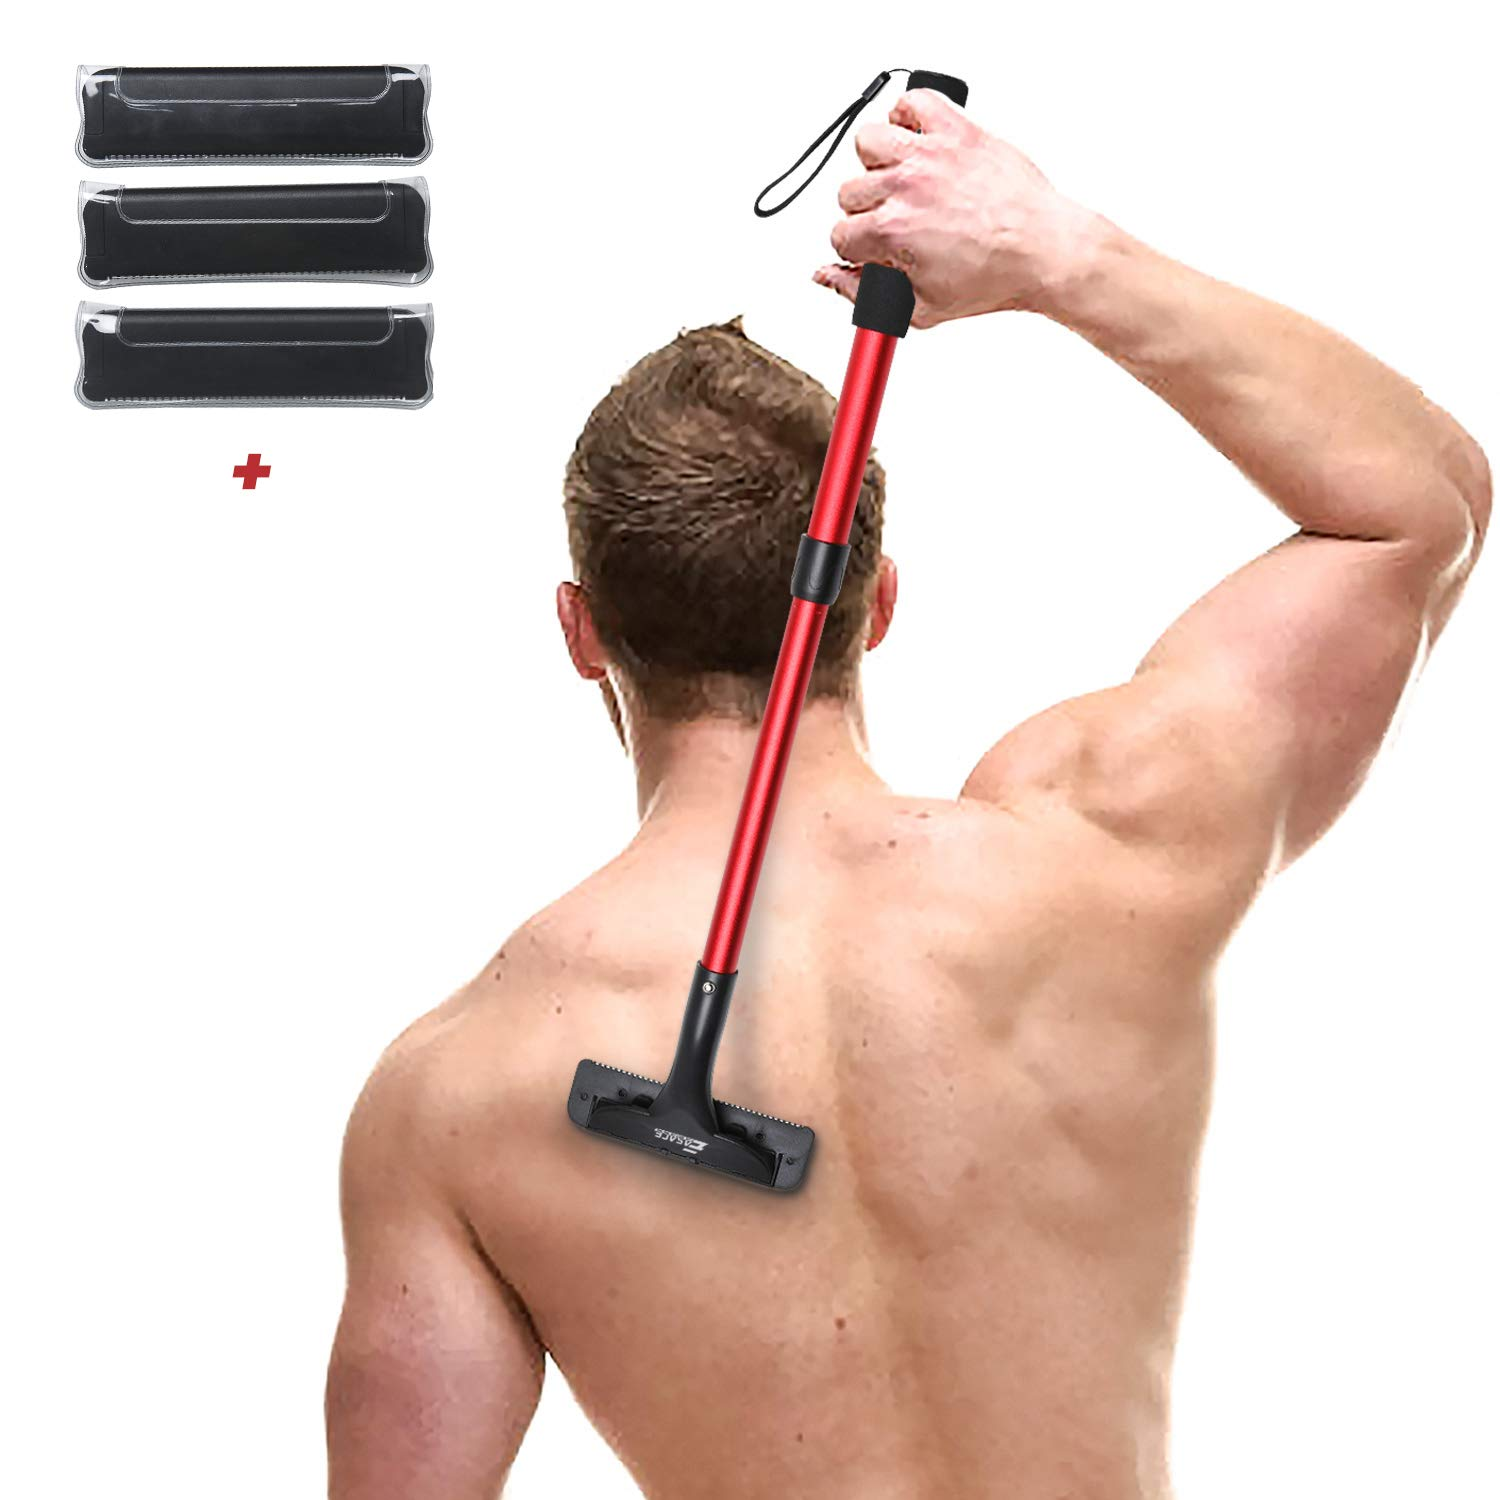 EASACE Back Hair Removal Back Groomer for Men, Body Shaver with Long Handle 21.5 Inch Adjustable, Curved DIY Pain-Free Body Shaving Trimmer with 3 Durable Refill Blade (Red)